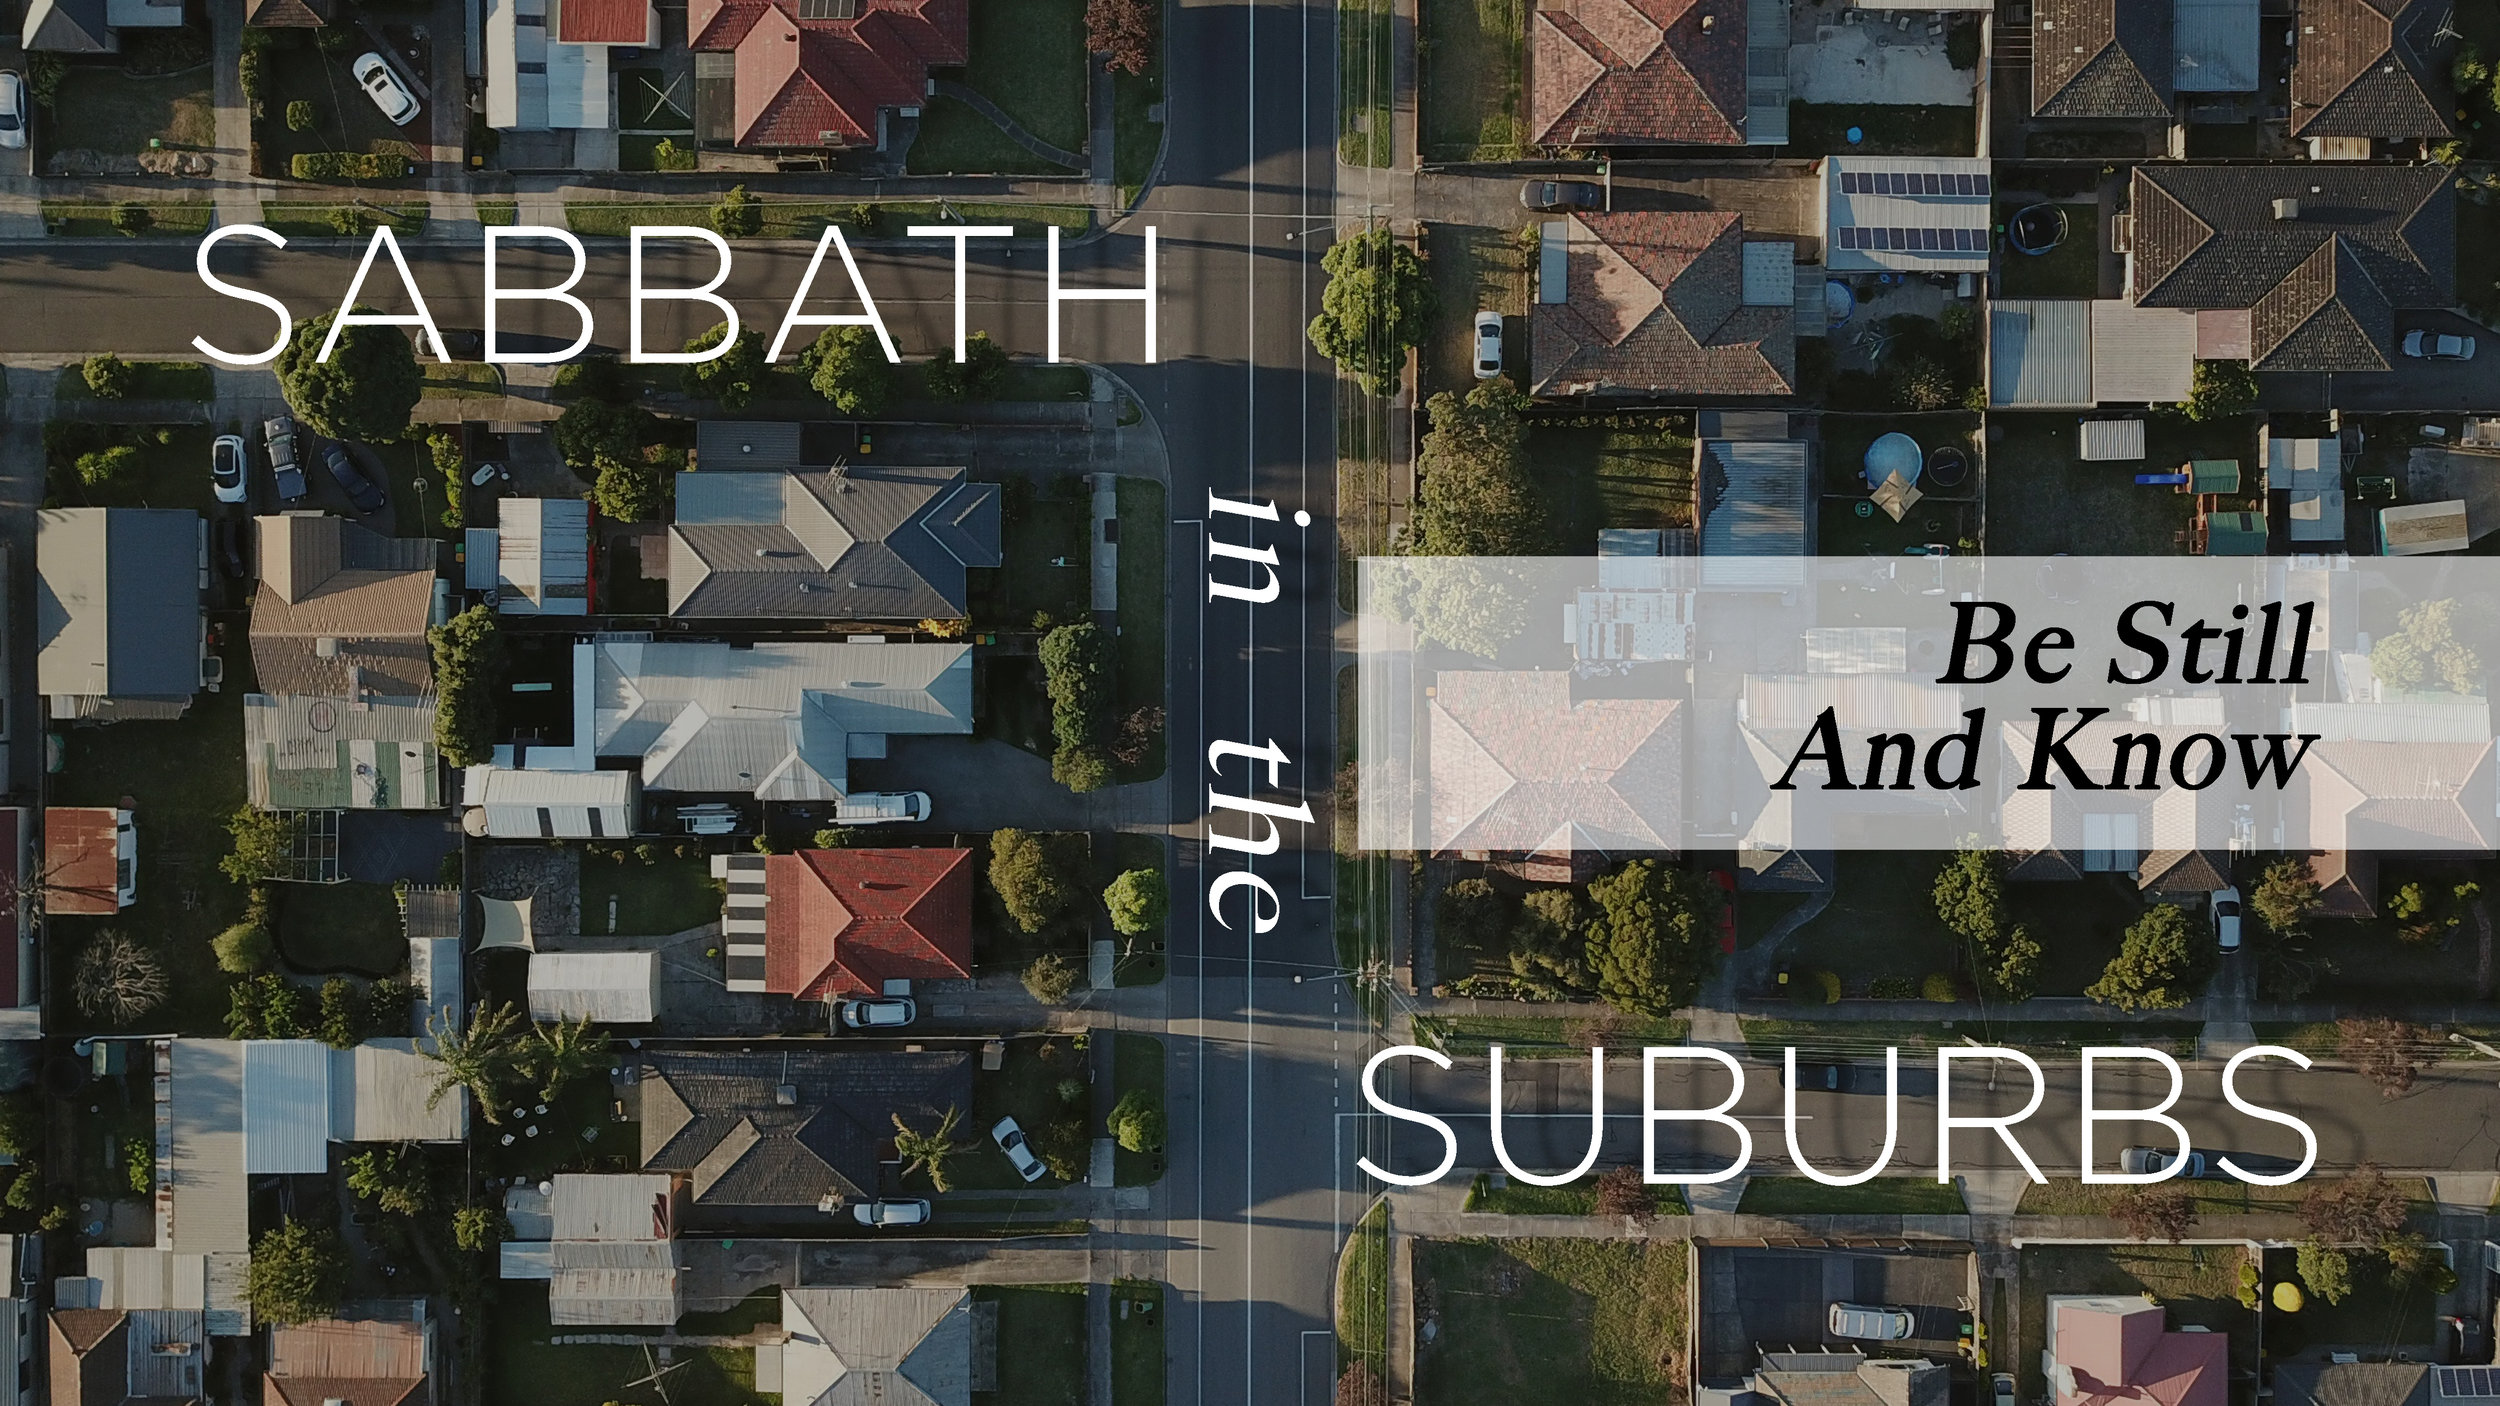 screen_art_sabbath_in_the_suburbs_2019_zoom_06302019.jpg